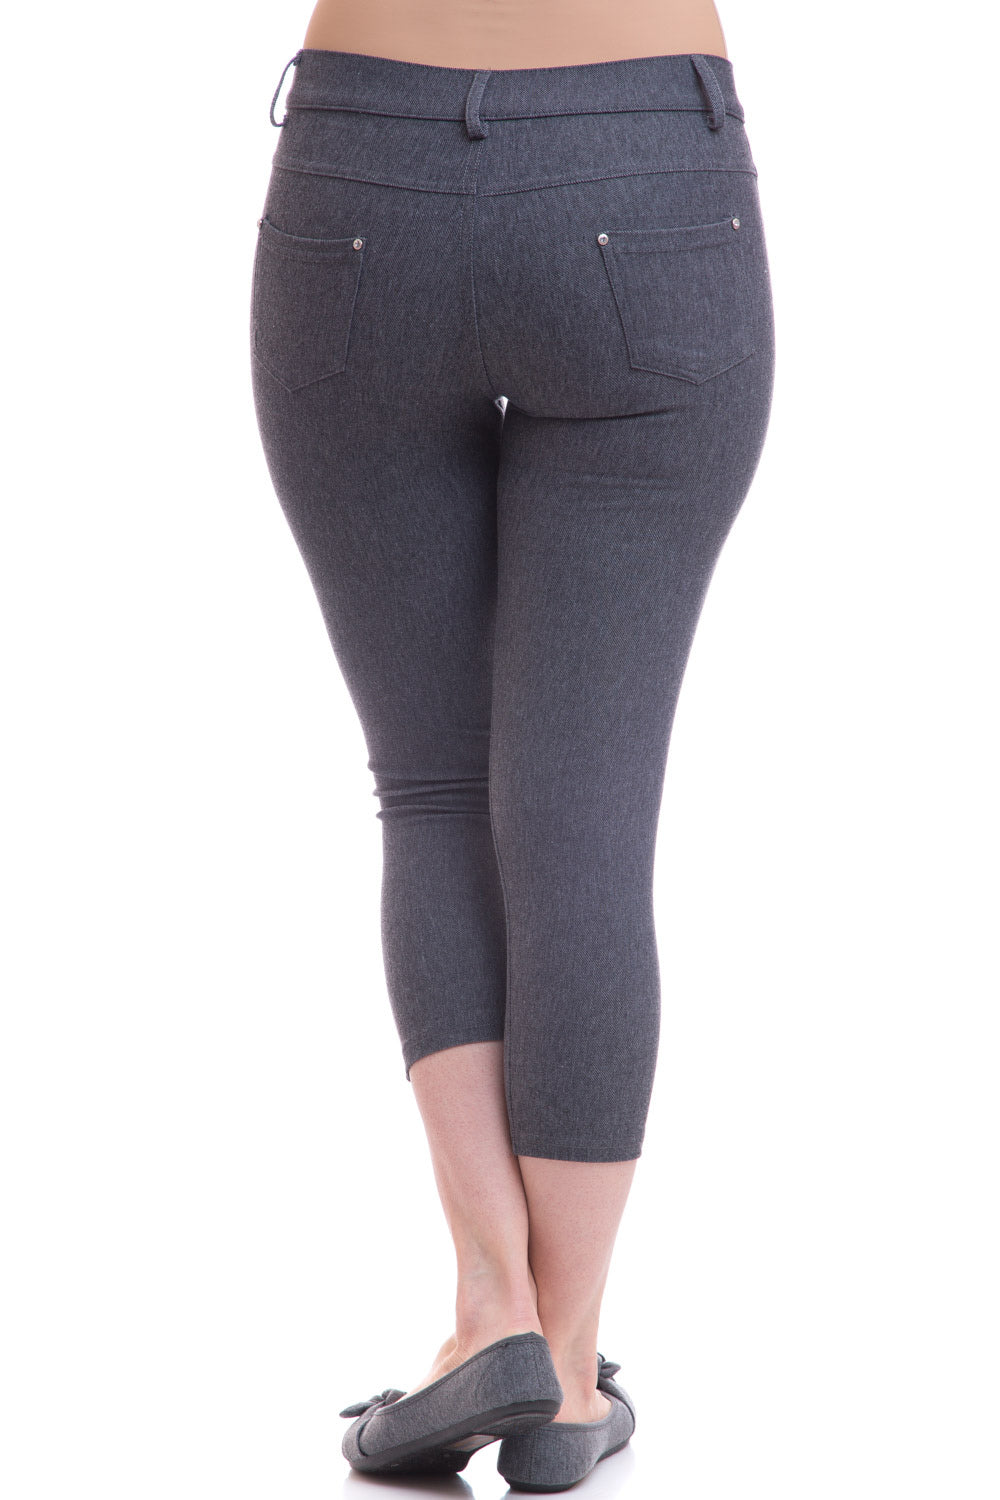 Type 2 Gray Capri Jeggings